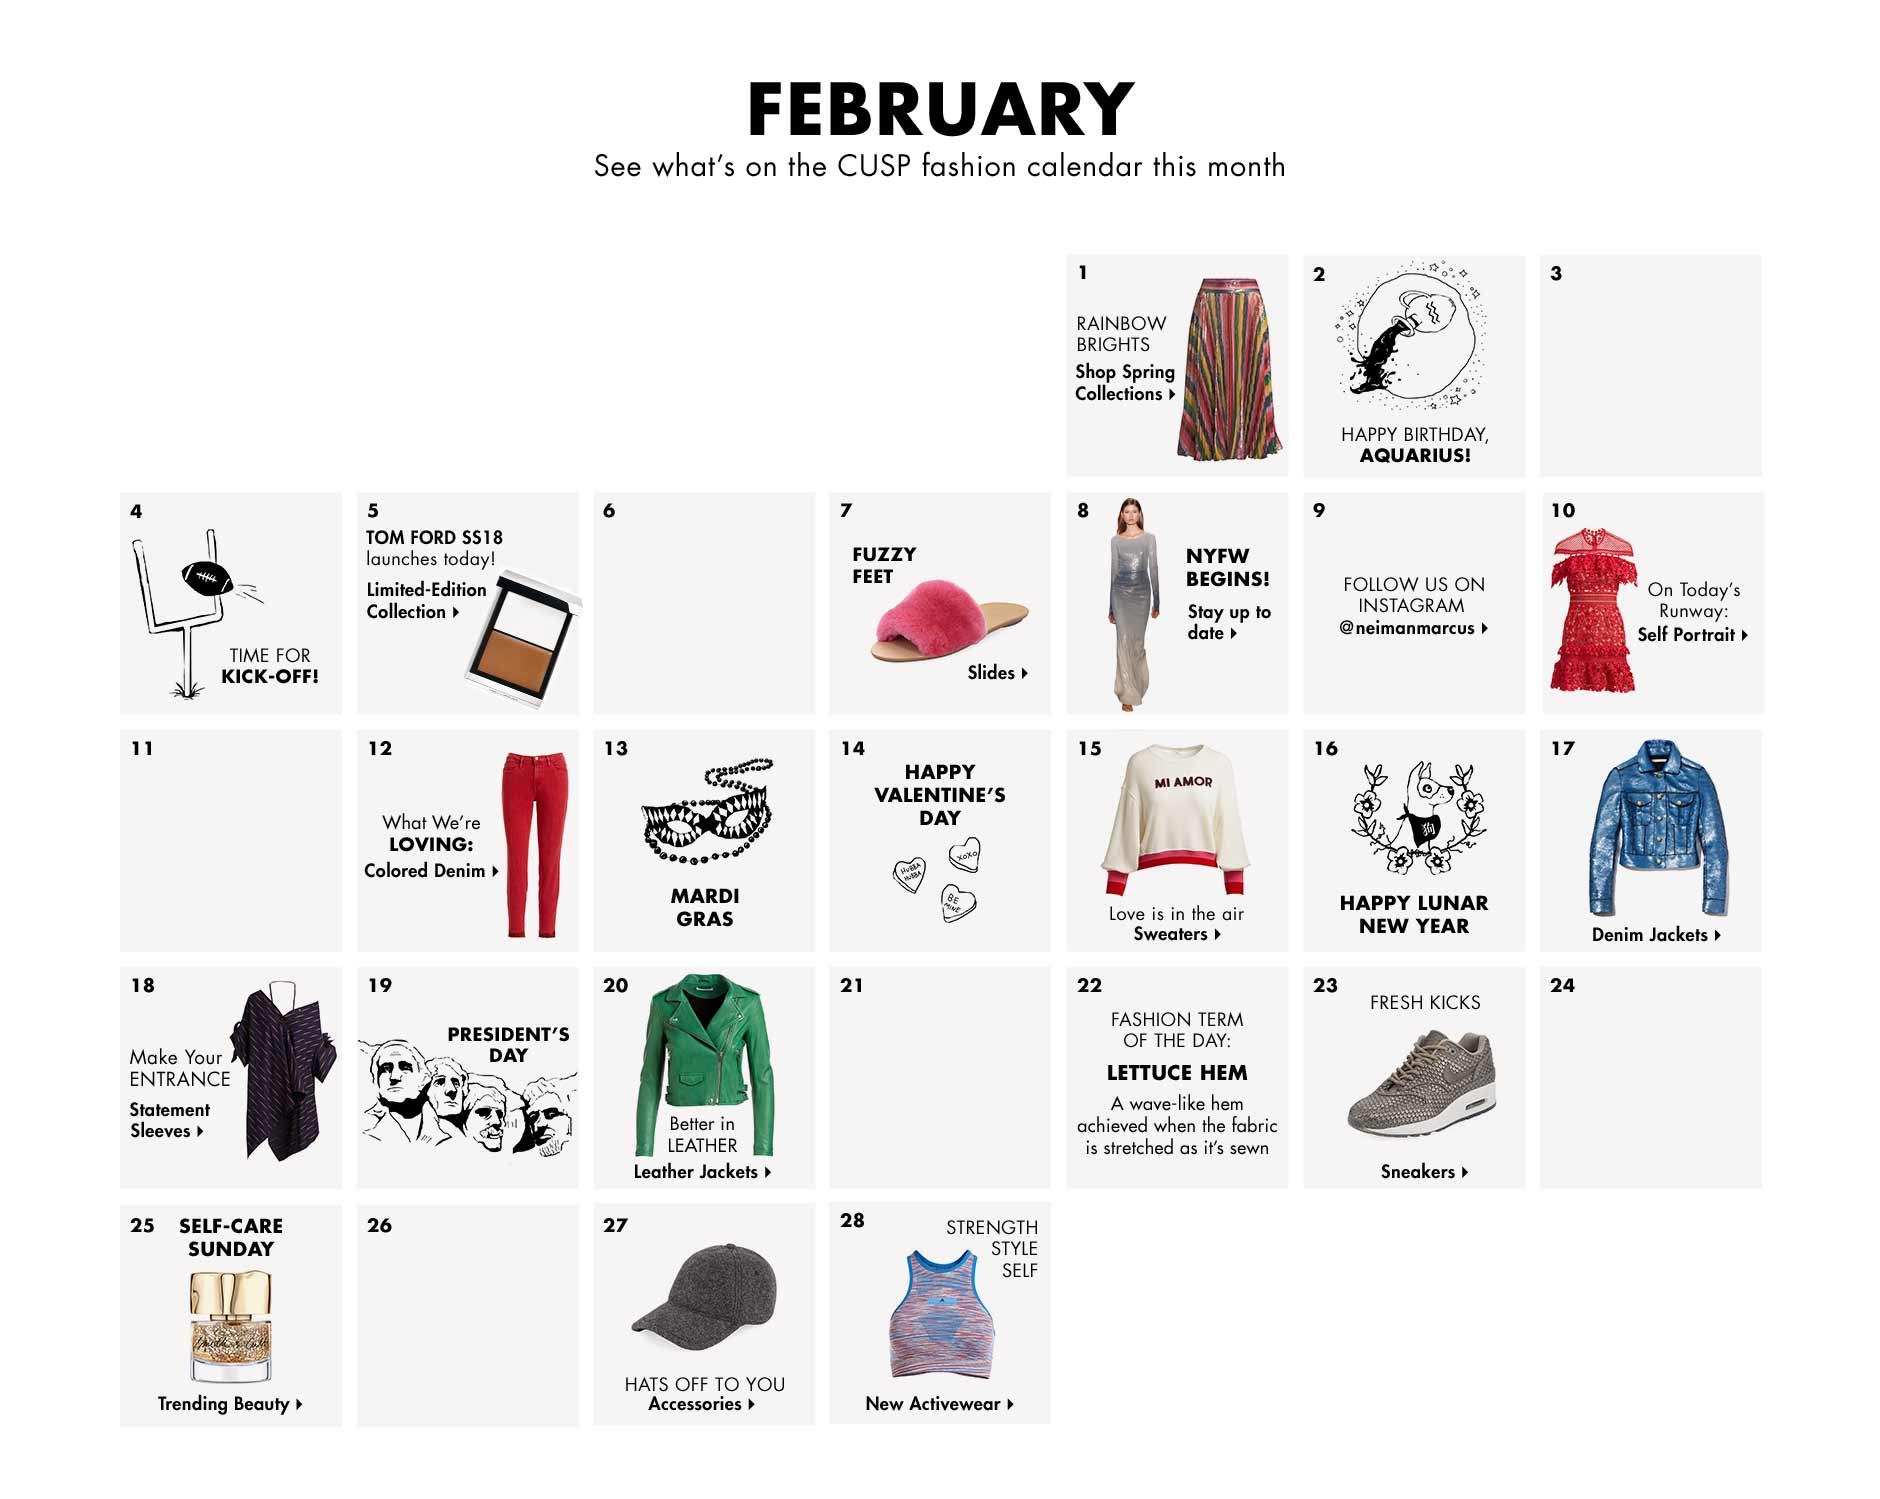 February - See what's on the CUSP fashion calendar this month